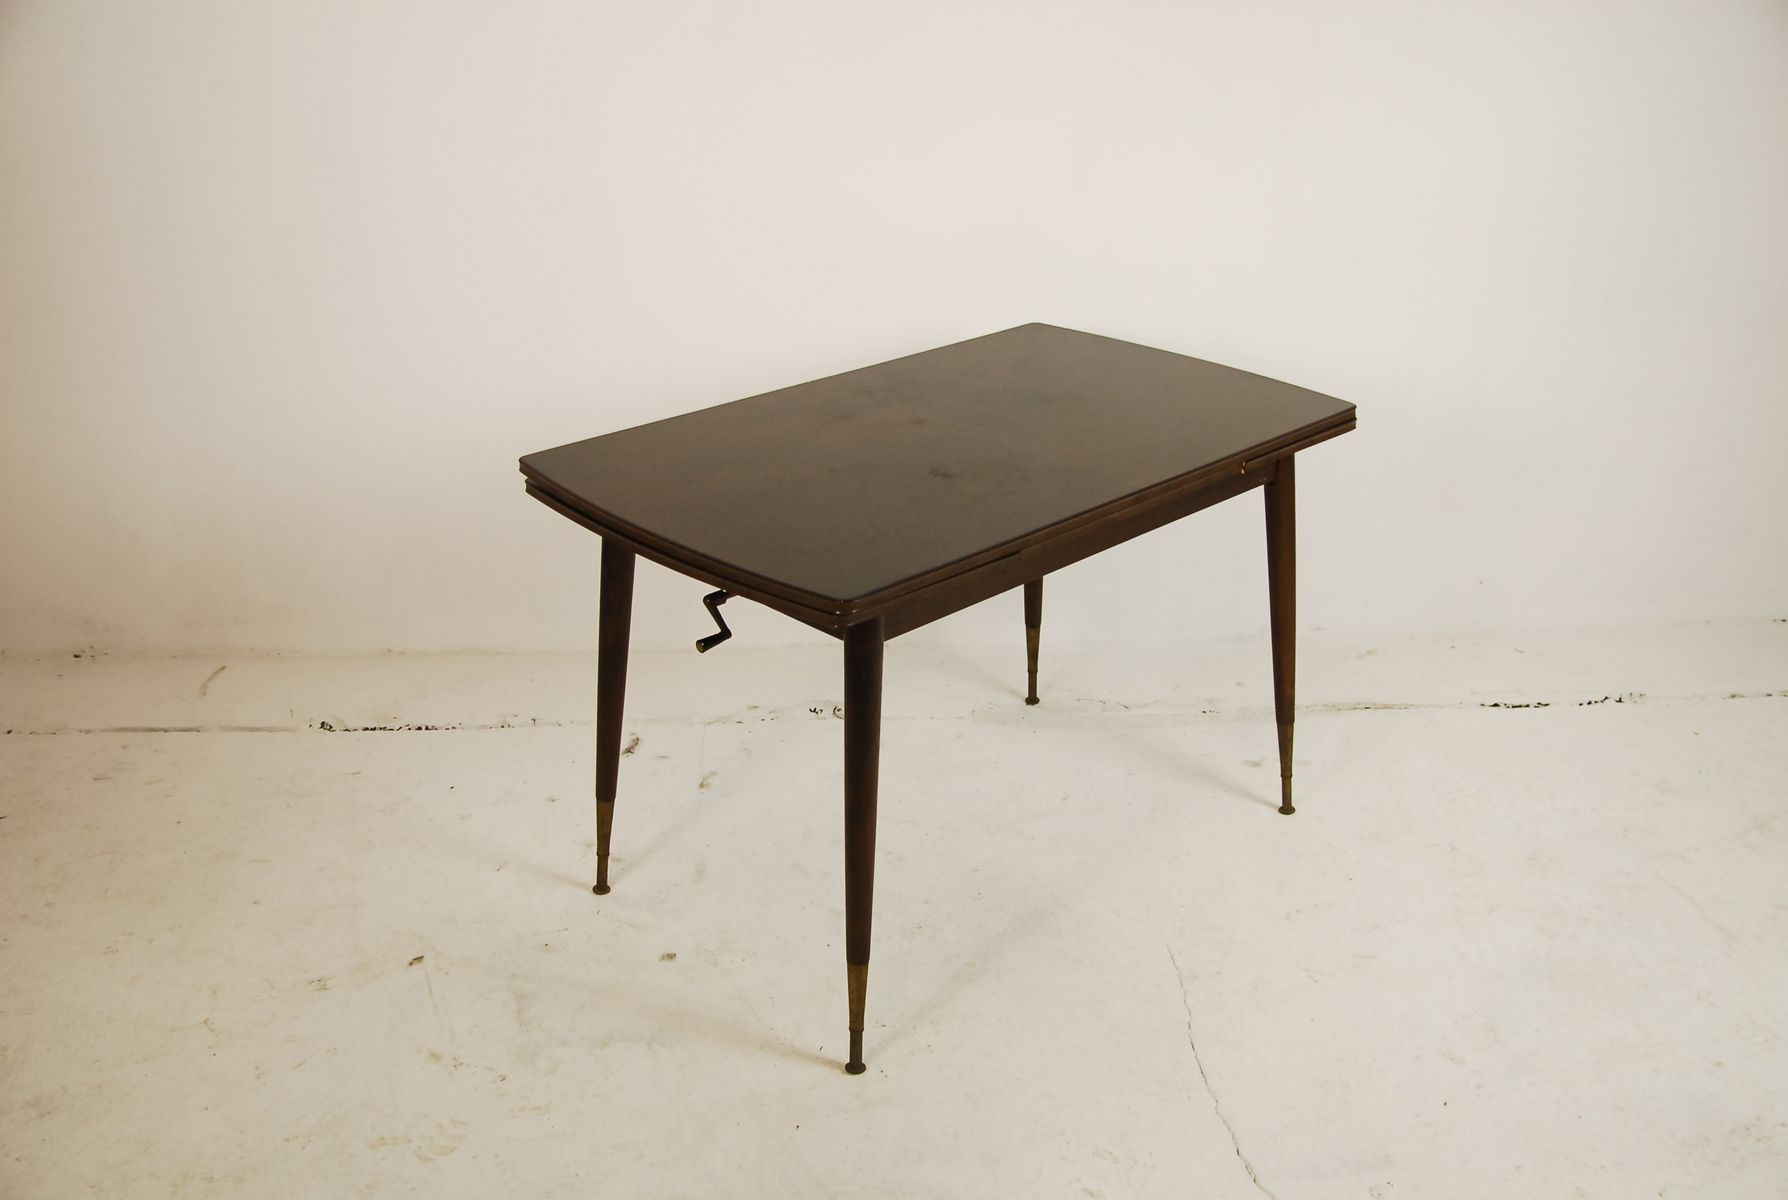 Superieur Drop Leaf Coffee Table, 1960s 5. $901.00. Price Per Piece